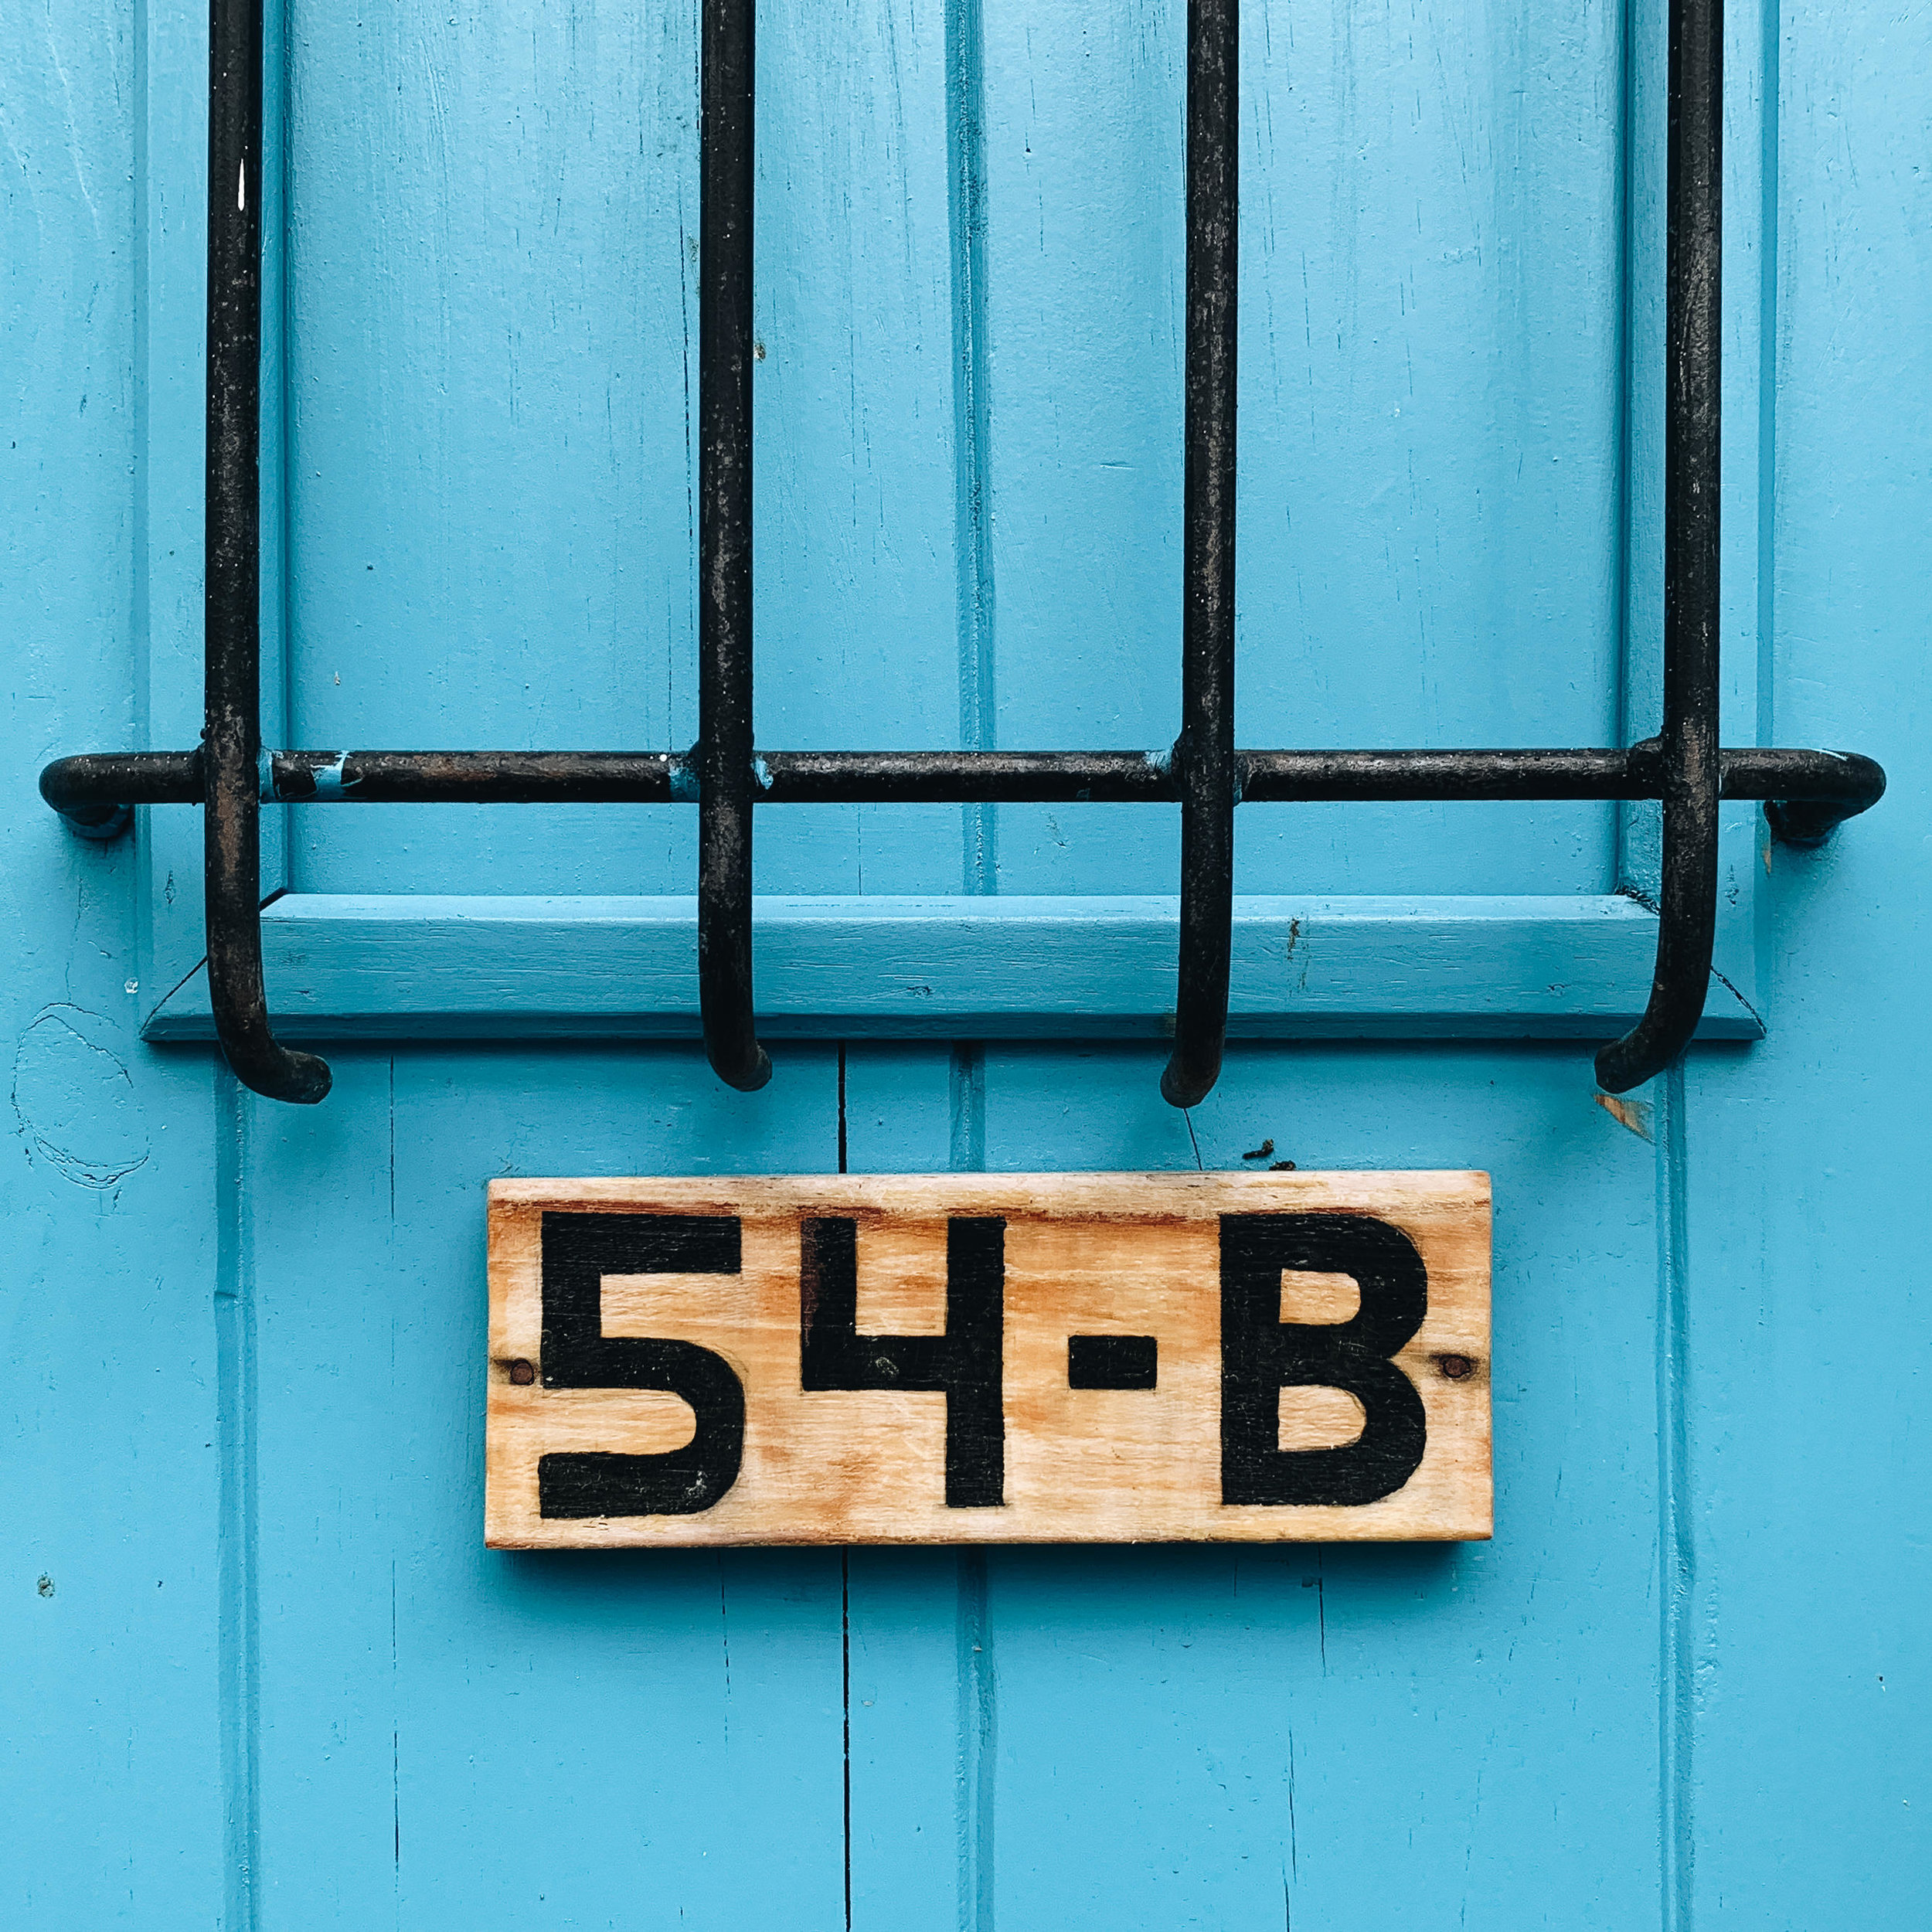 Details of a colorful blue door in Zona Colonial, Dominican Republic